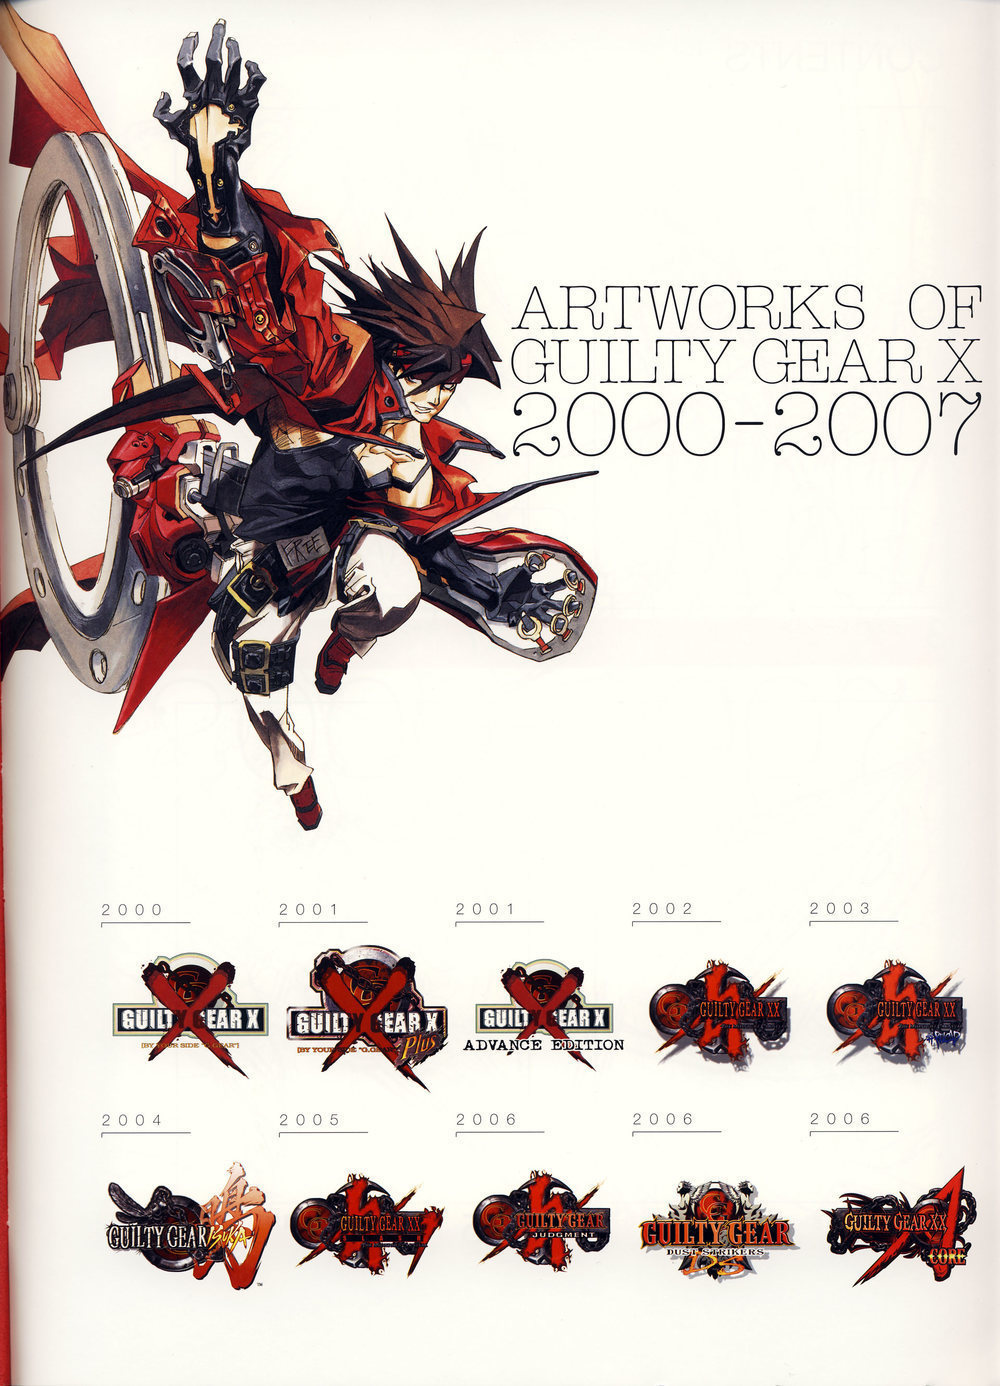 《罪恶装备-ARTWORKS OFGUILTY GEAR X》 (5).jpg